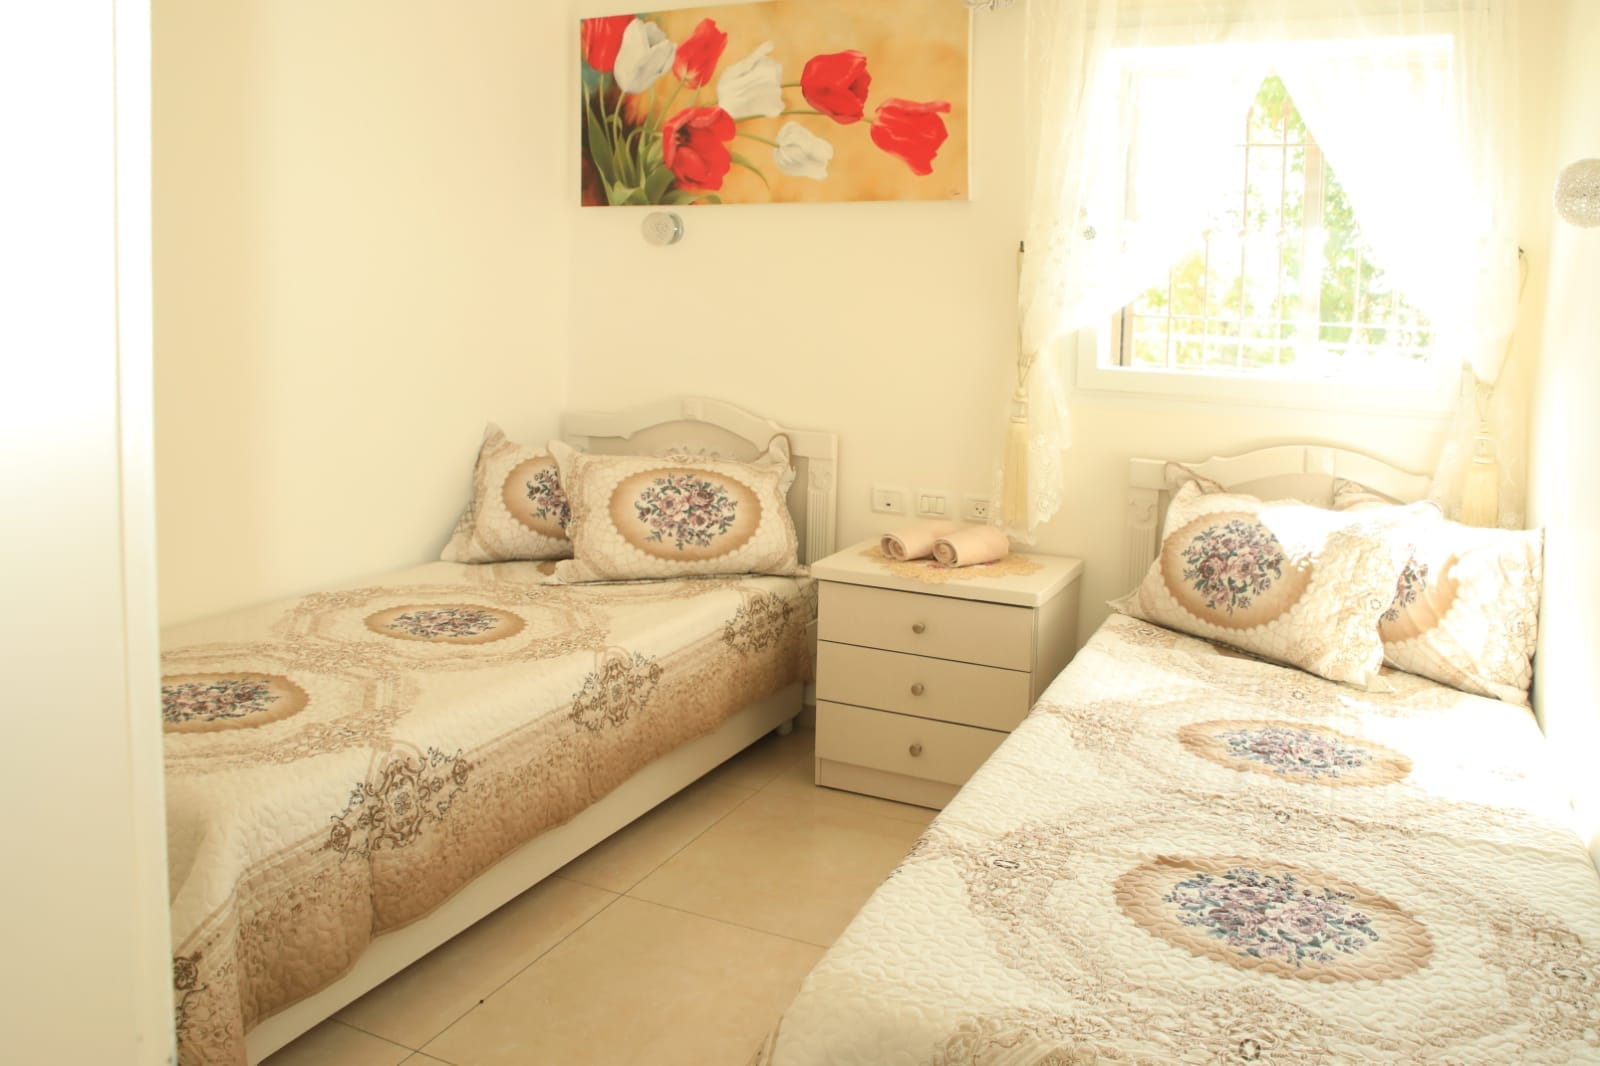 1 Bedroom Vacation Rental in Rabbenu Gershom (7)